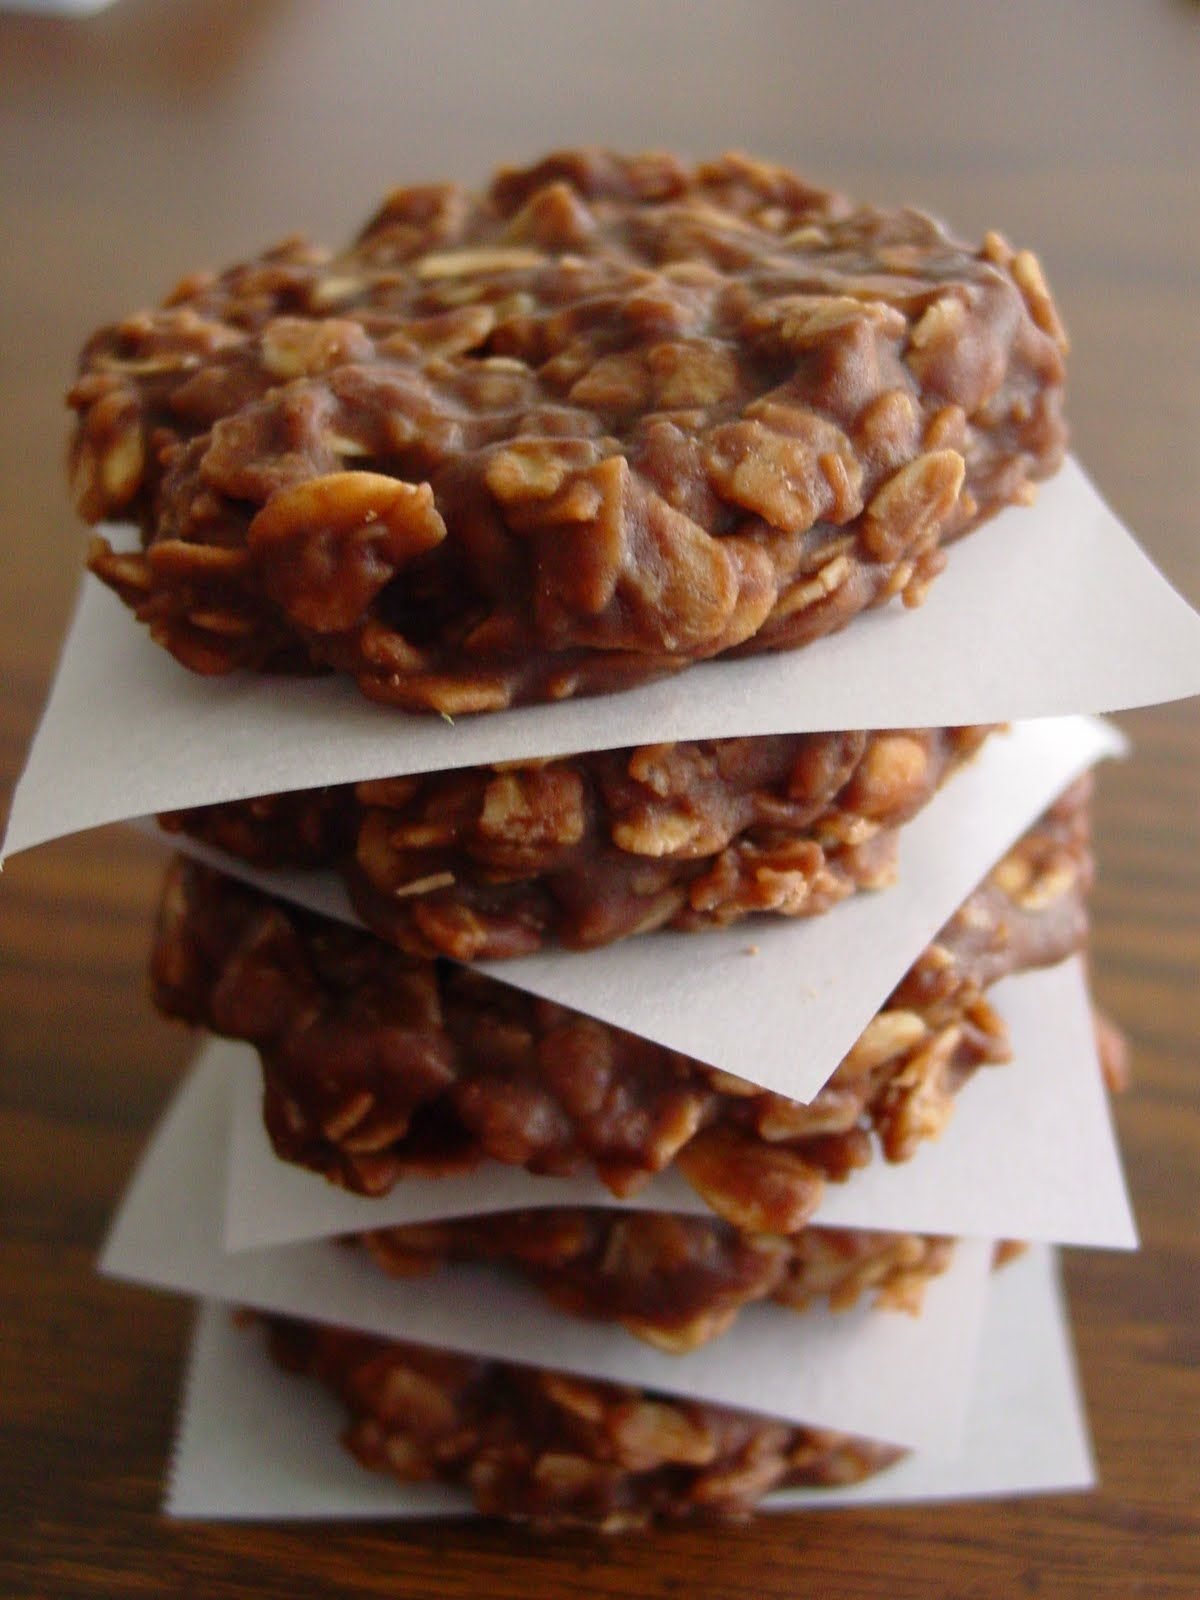 Oatmeal/ peanut butter/ chocolate no- bake cookies.  *use natural peanut butter and almond milk for THM